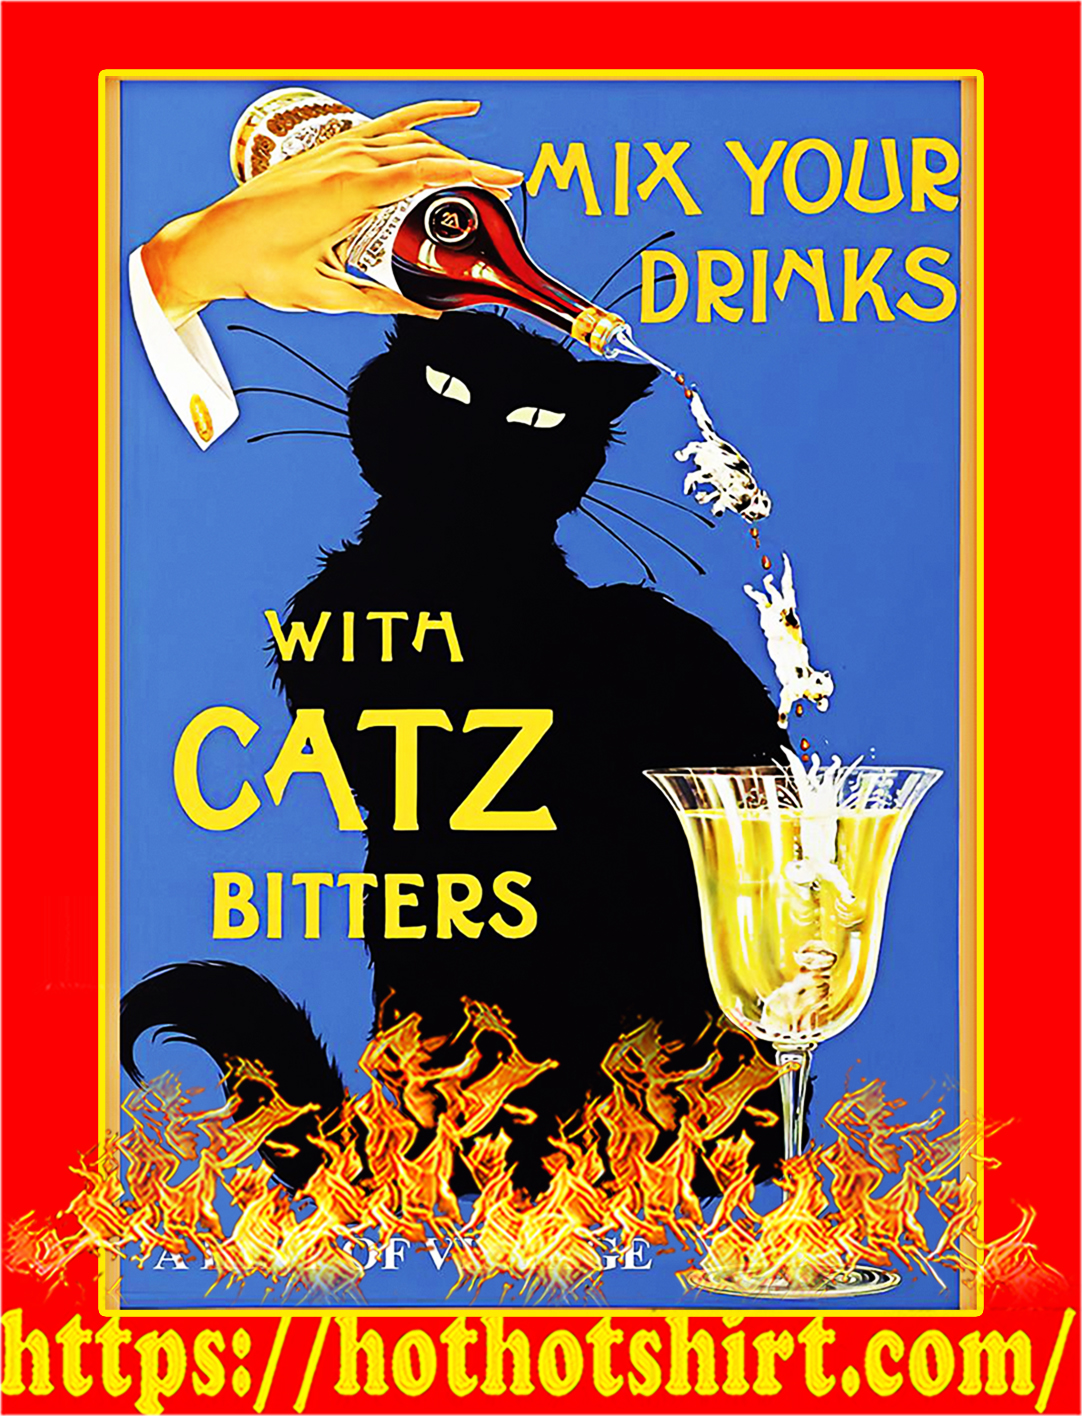 Mix your drinks with catz bitters poster - A1